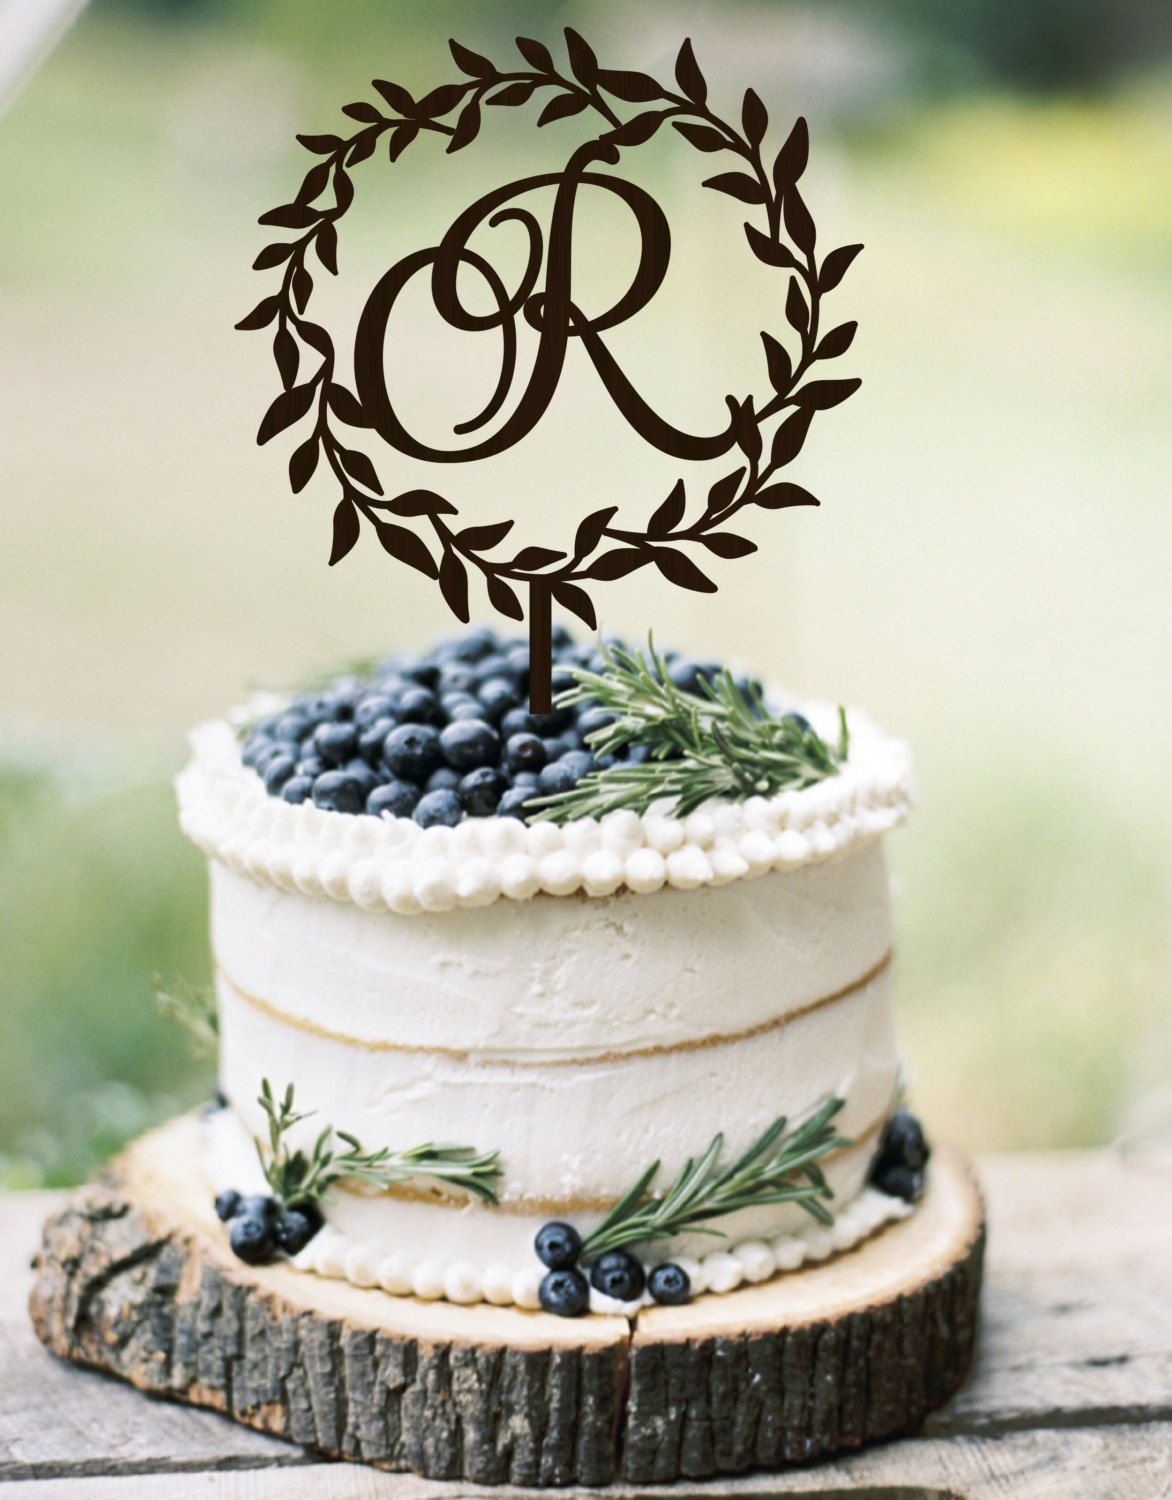 Wedding Cake Topper Wreath Monogram Rustic Cake Topper Wedding ...